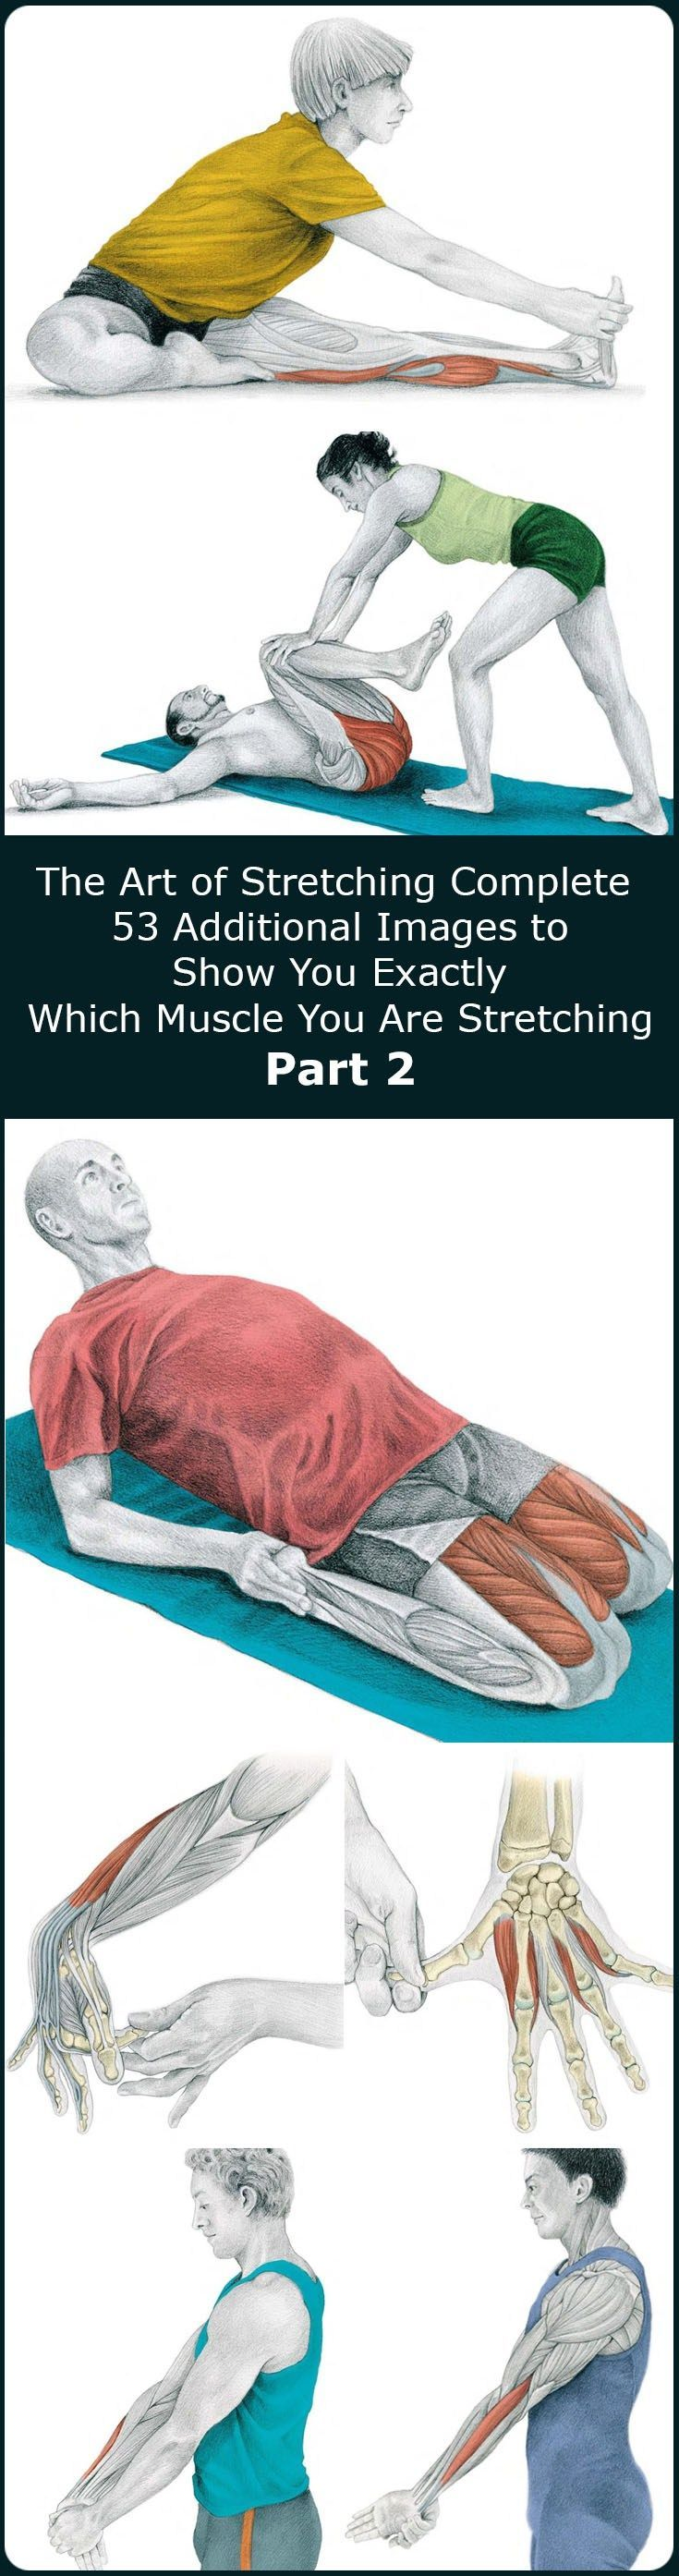 In our previous article The Art of Stretching we presented 36 illustration in color with stretches for specific muscles and